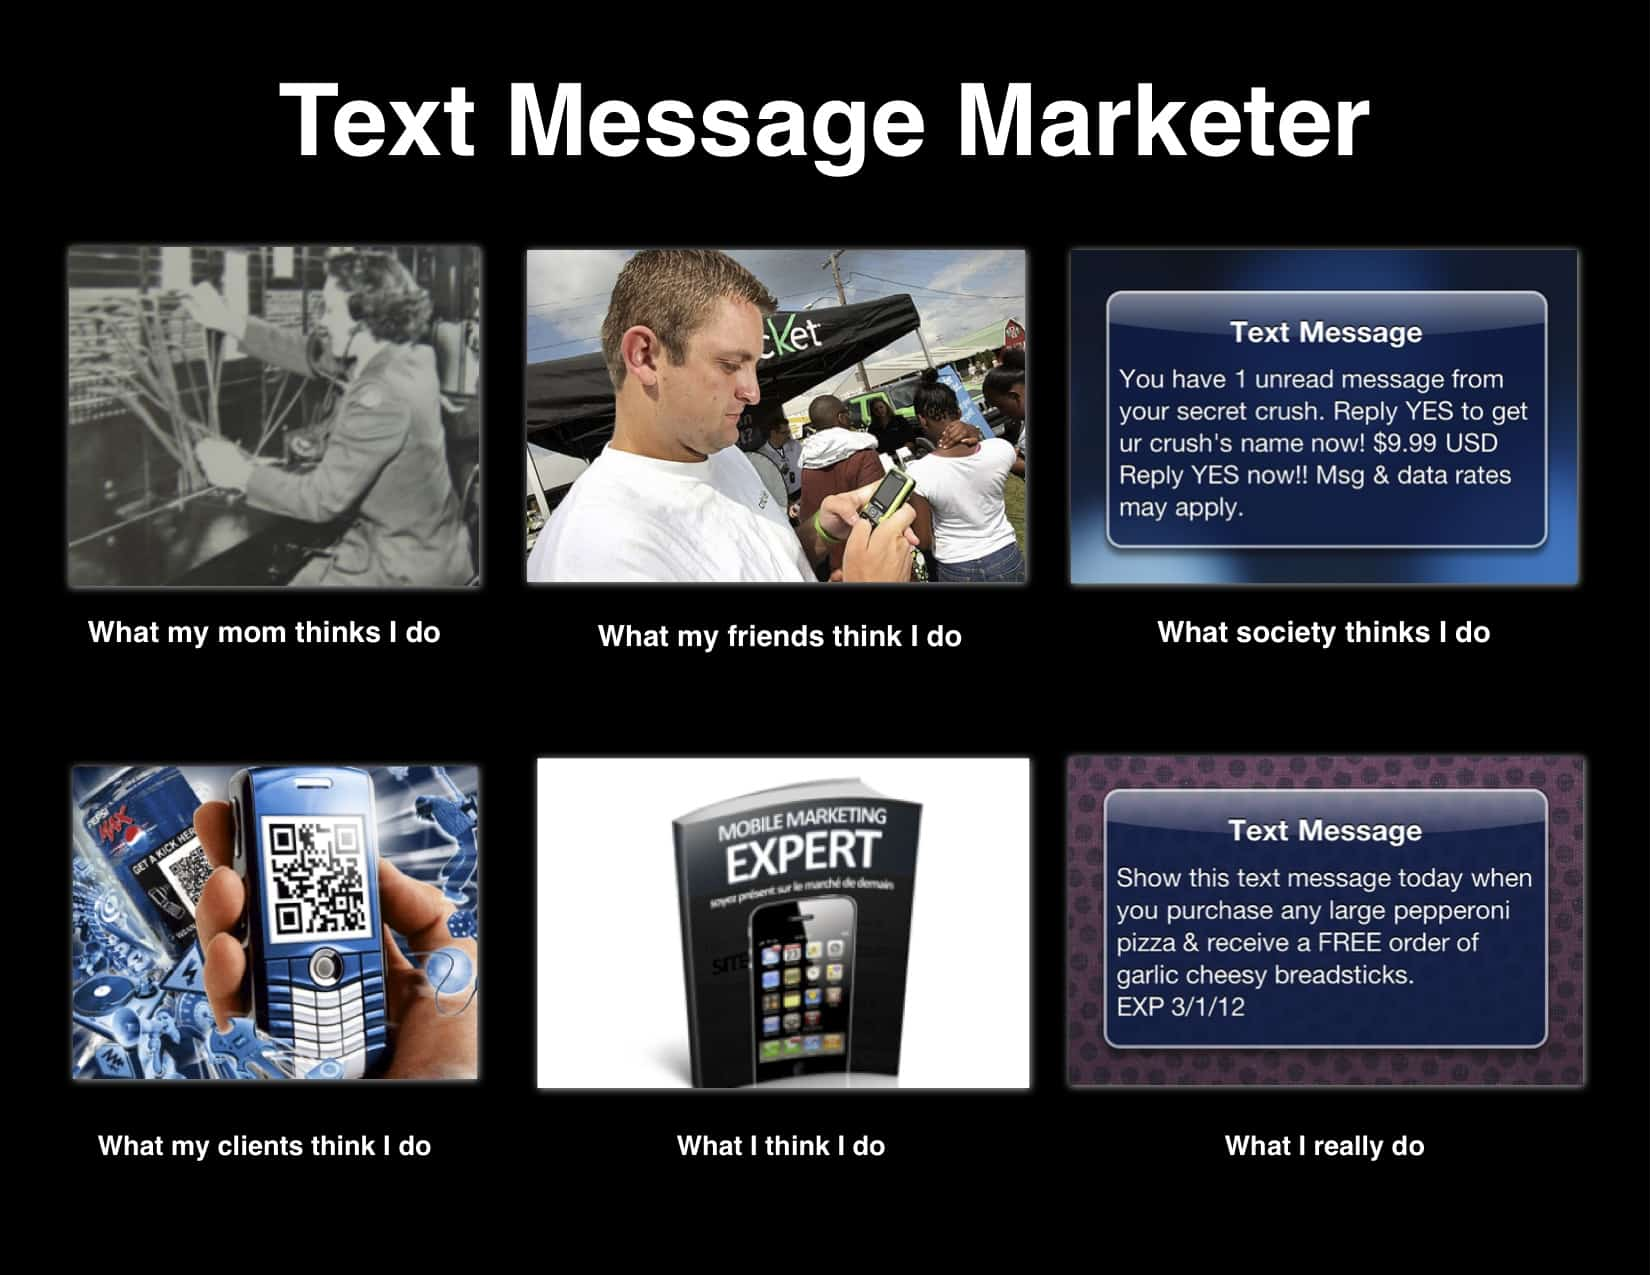 Text Message Marketer